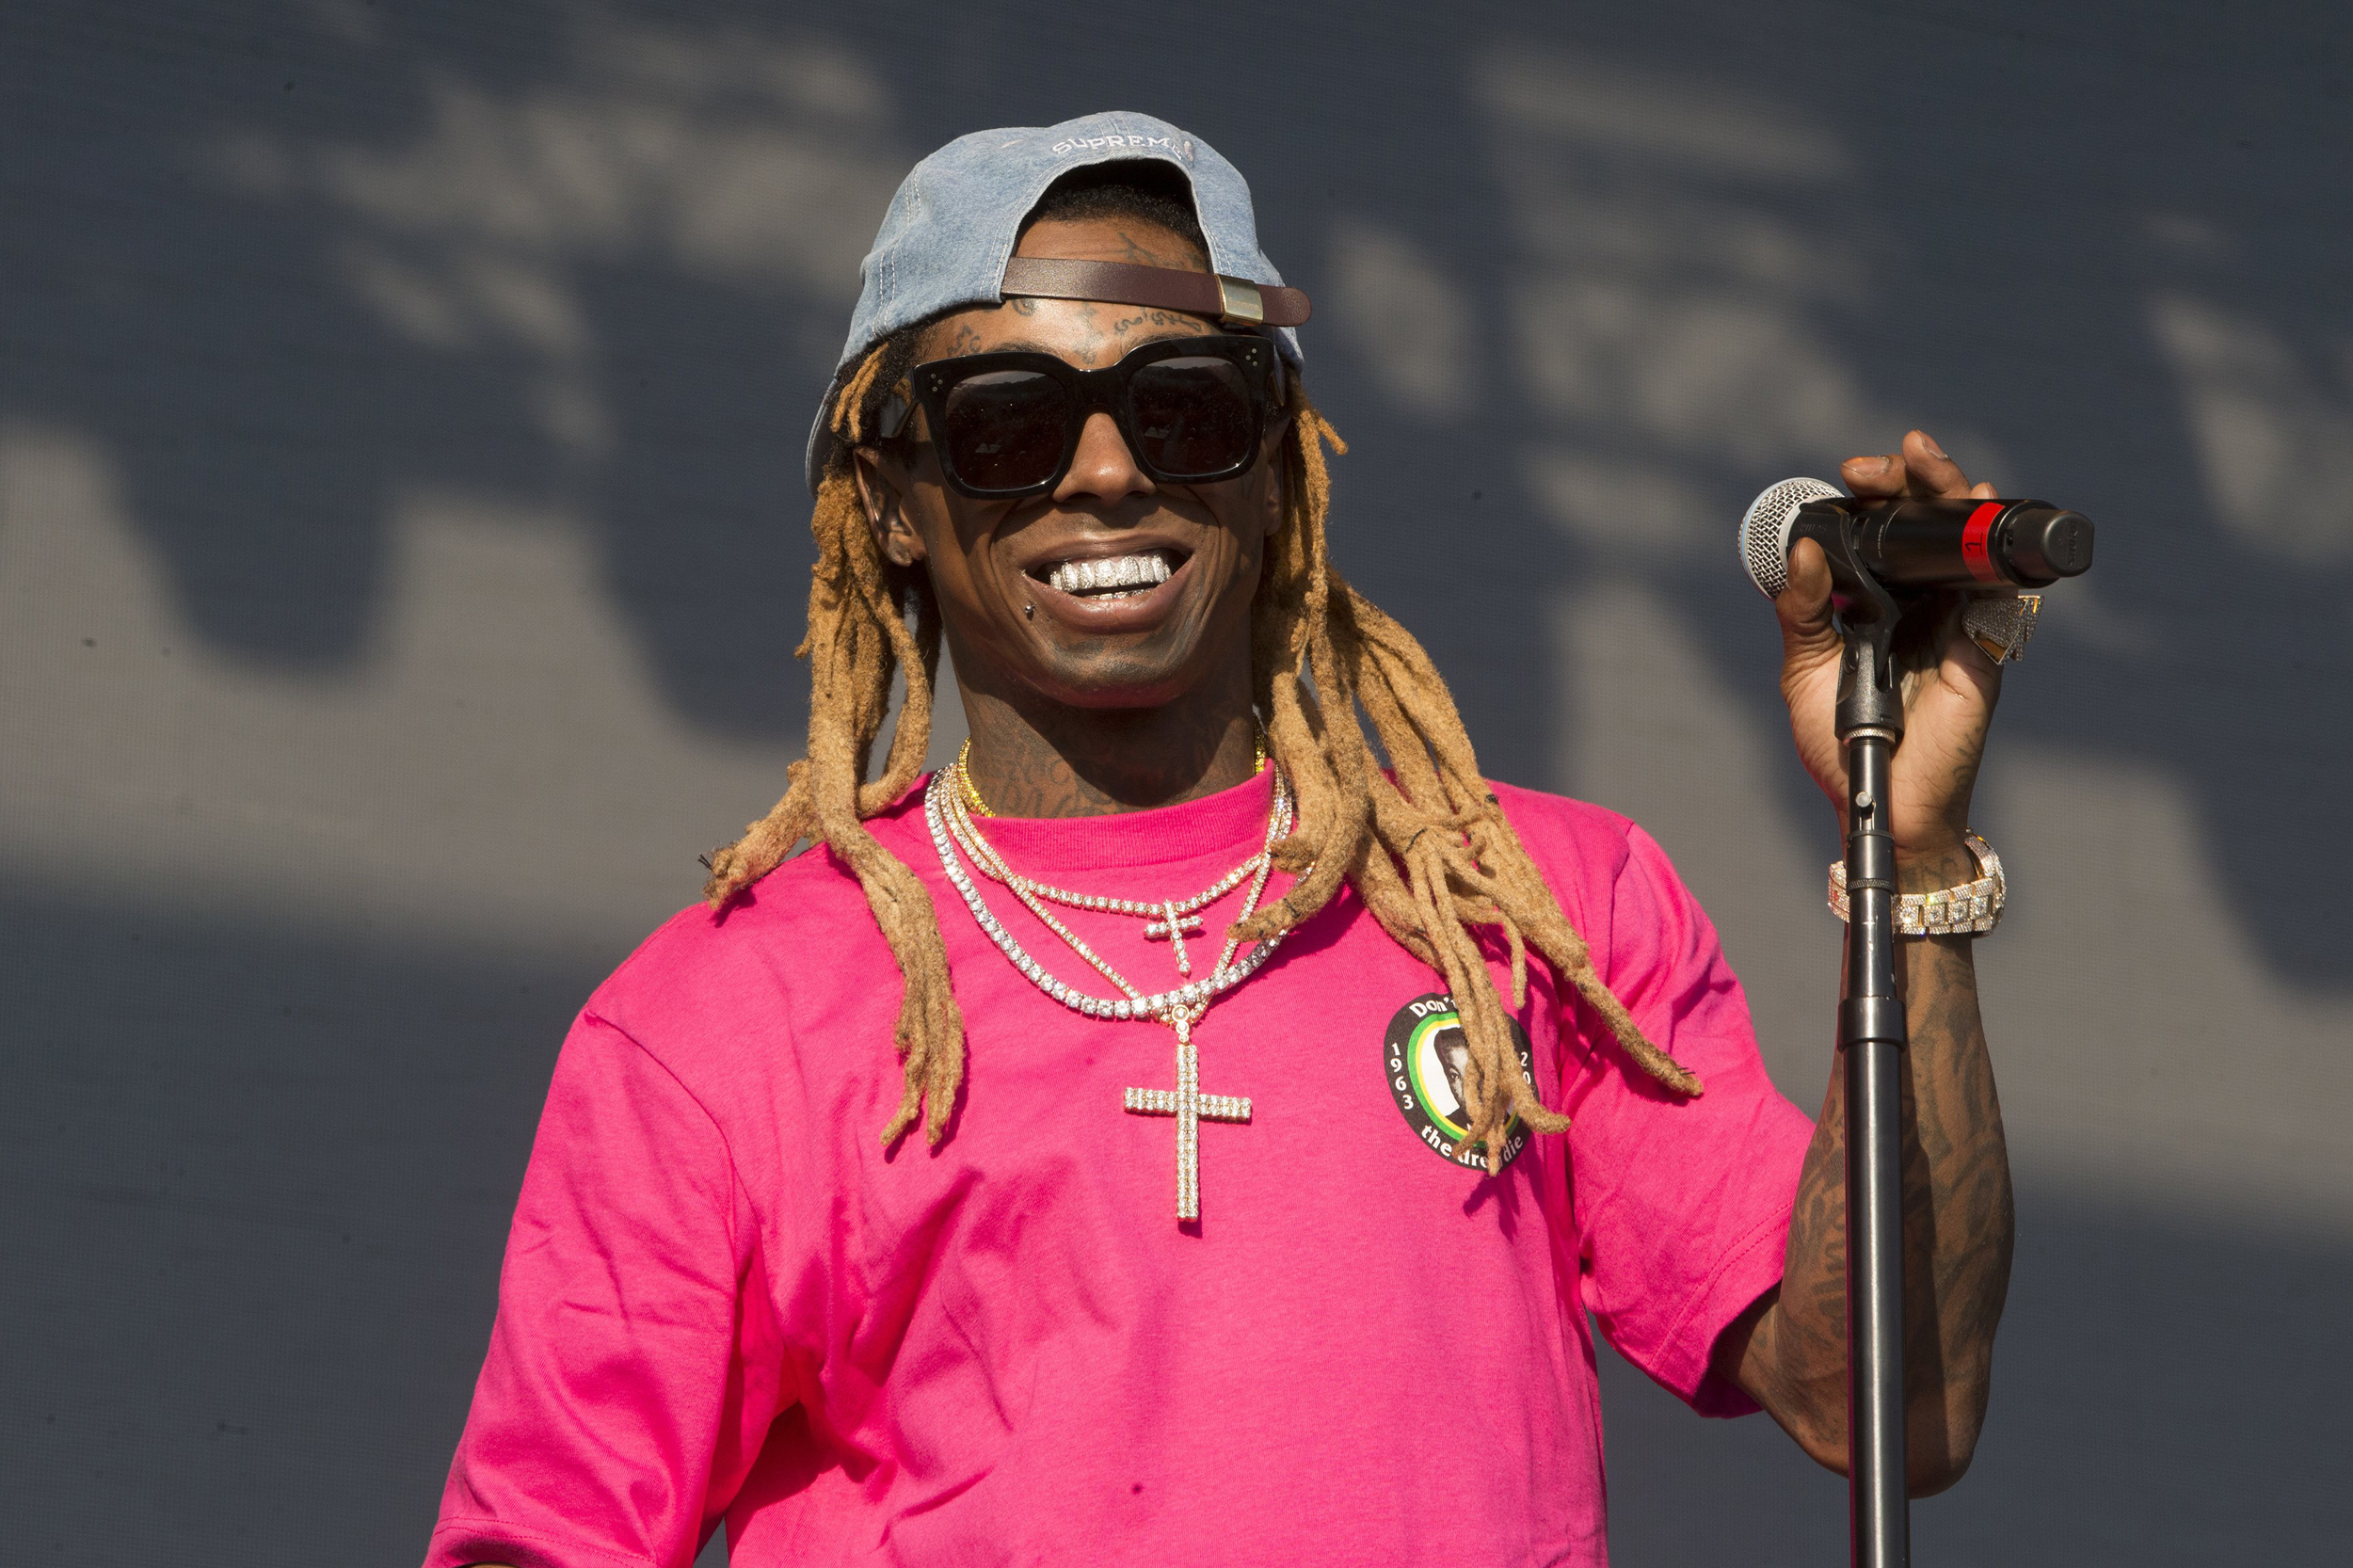 omah-lay-tems-arrested-uganda-lil-wayne-pleads-guilty-gerald-houllier-dead-latest-news-global-world-stories-monday-december-2020-style-rave